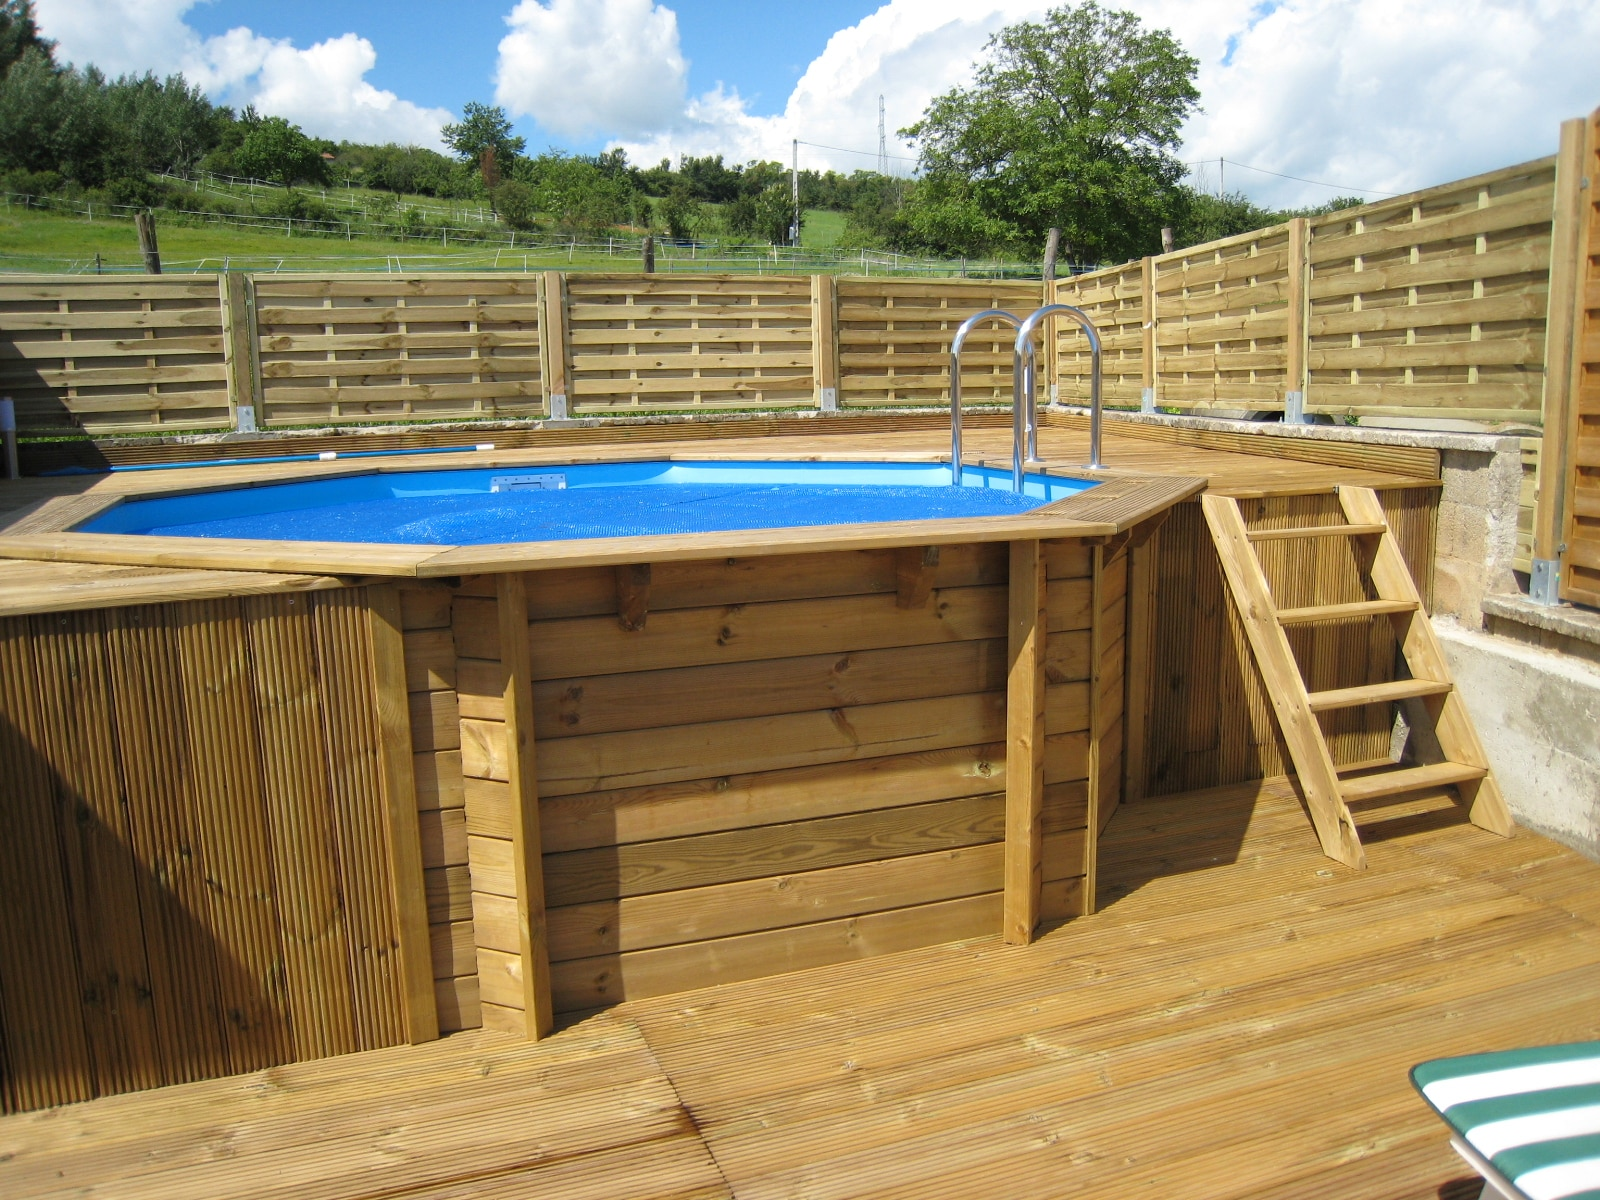 Comment monter une piscine en bois for Amenagement piscine hors sol bois